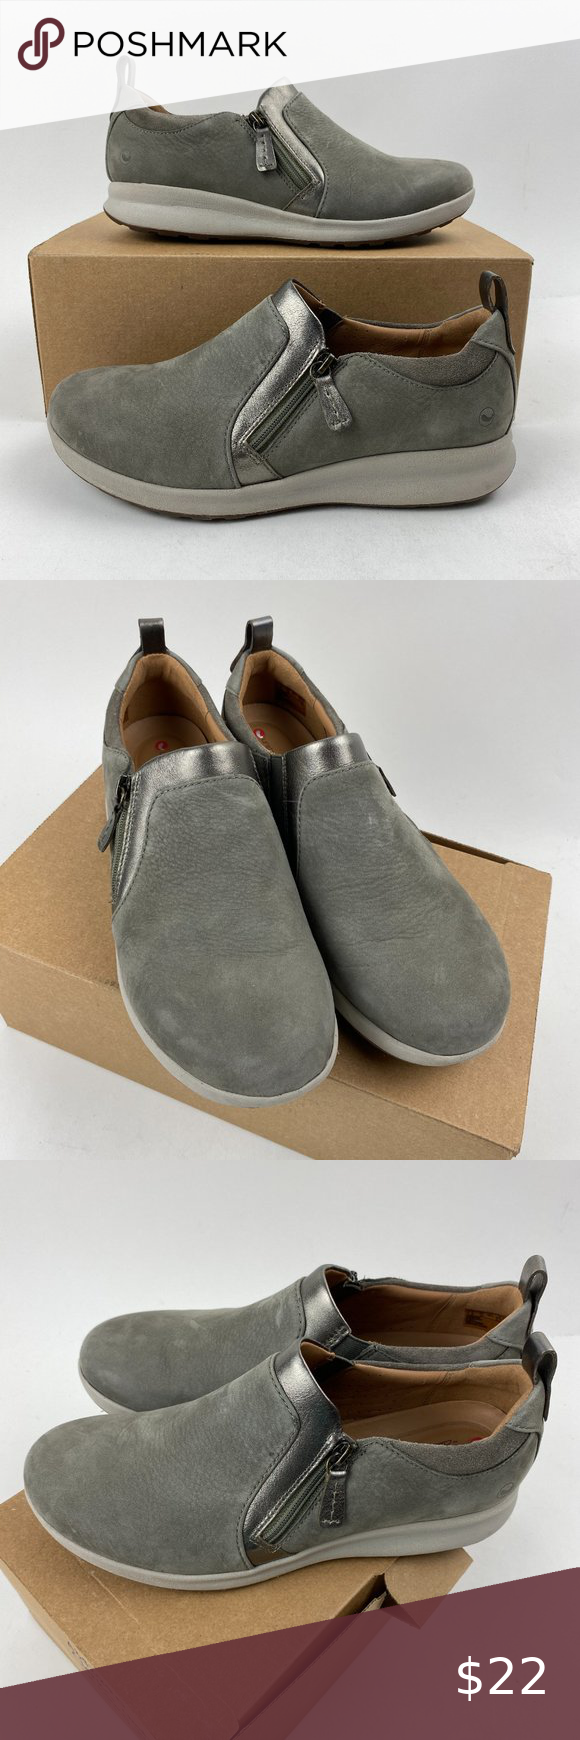 Clarks Unstructured Un Adorn Side Zip Shoe A342850 In 2020 Slip On Shoes Clarks Shoes